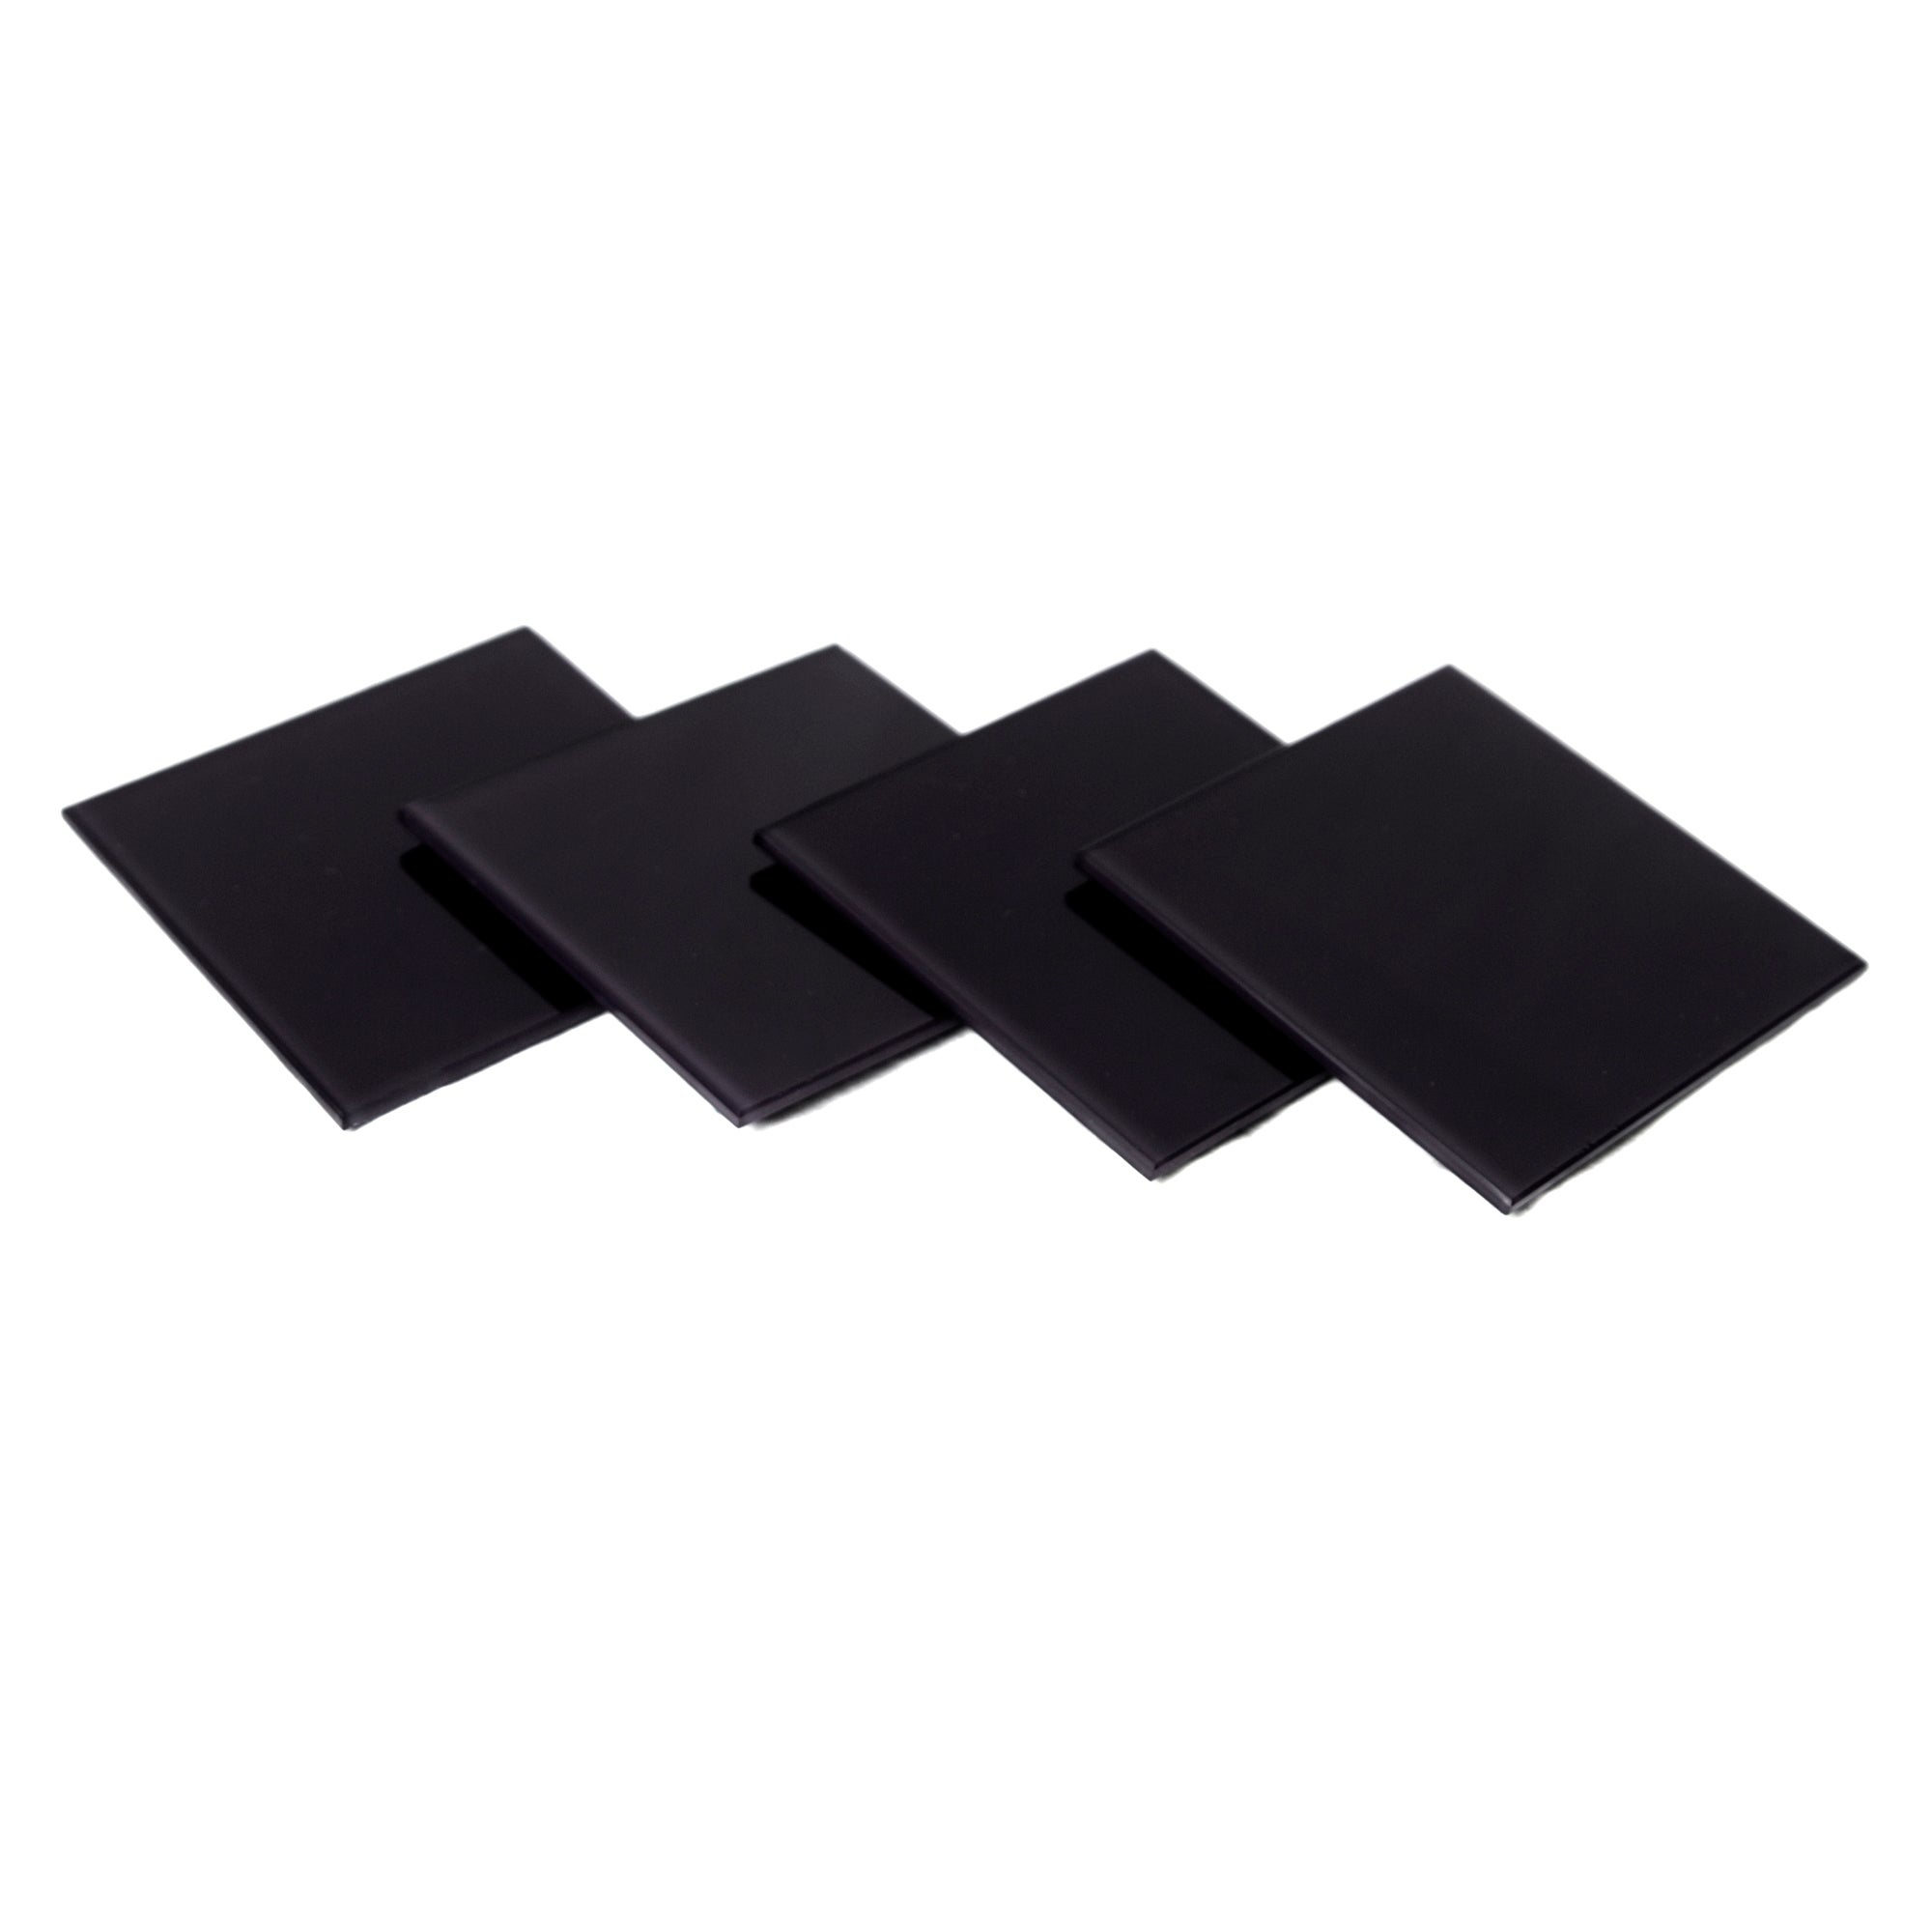 Black Spectrum Collection Set Of 4 Glass Coasters